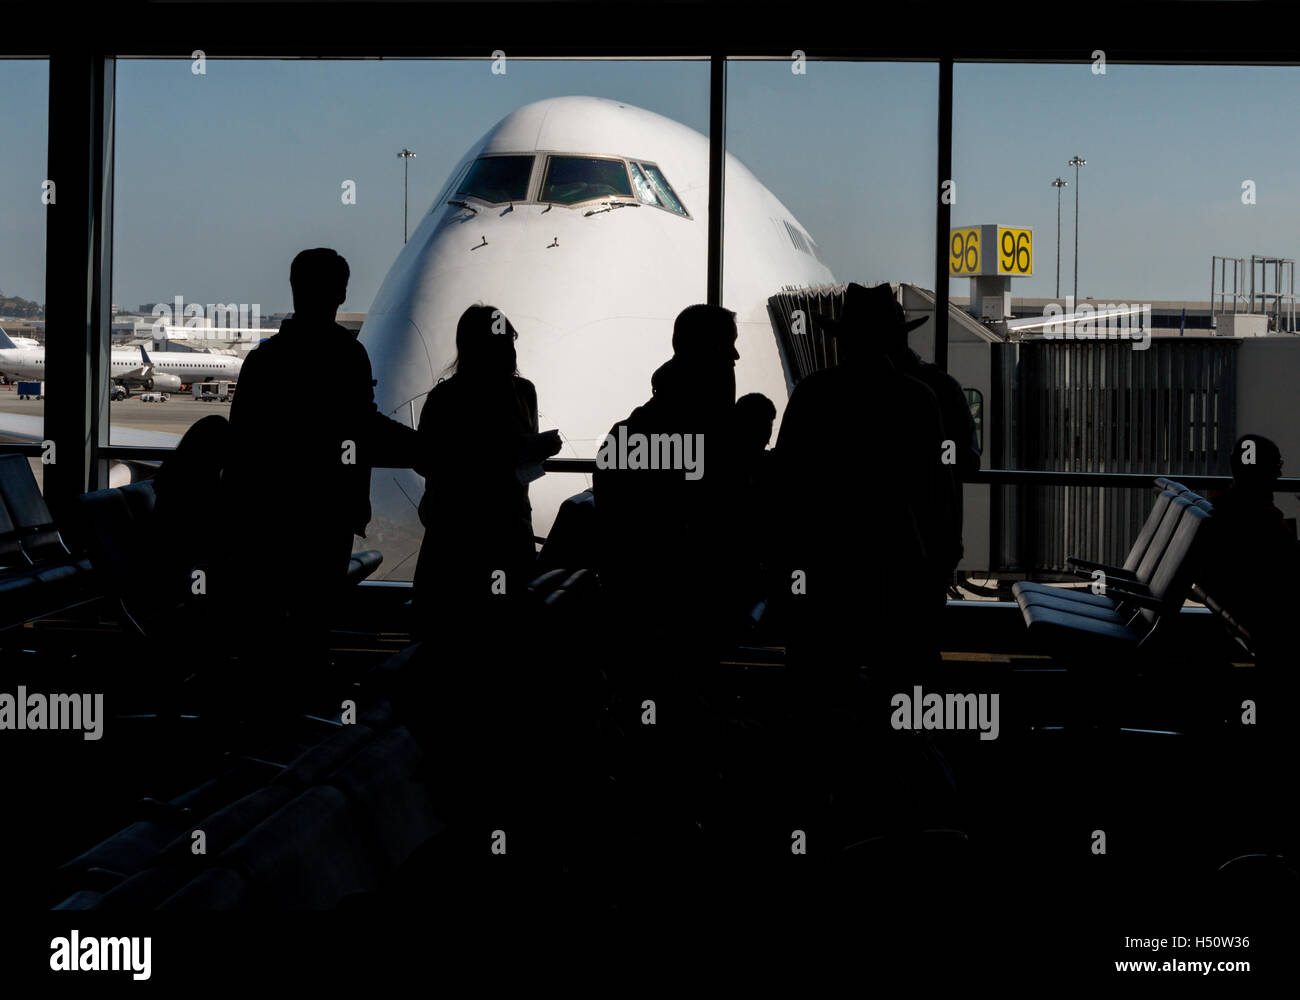 Silhouette of passengers waiting at the airport gate with the nose of an aircraft outside on the airport tarmac. - Stock Image